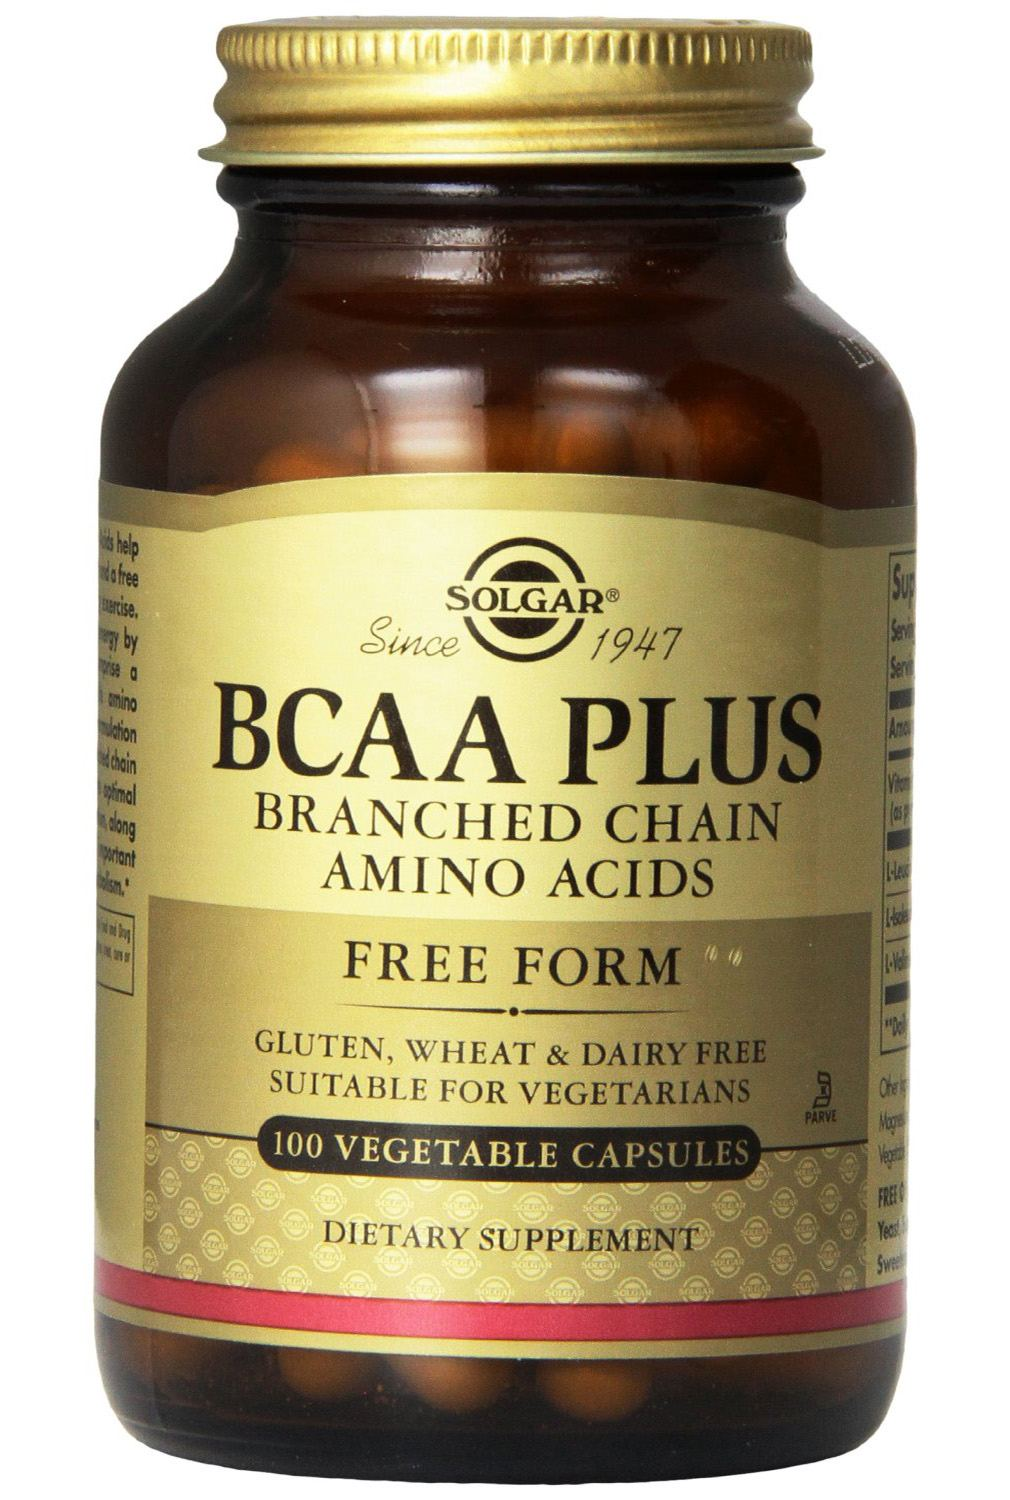 Solgar BCAA Plus Branched Chain Amino Acids Vegetable Capsules